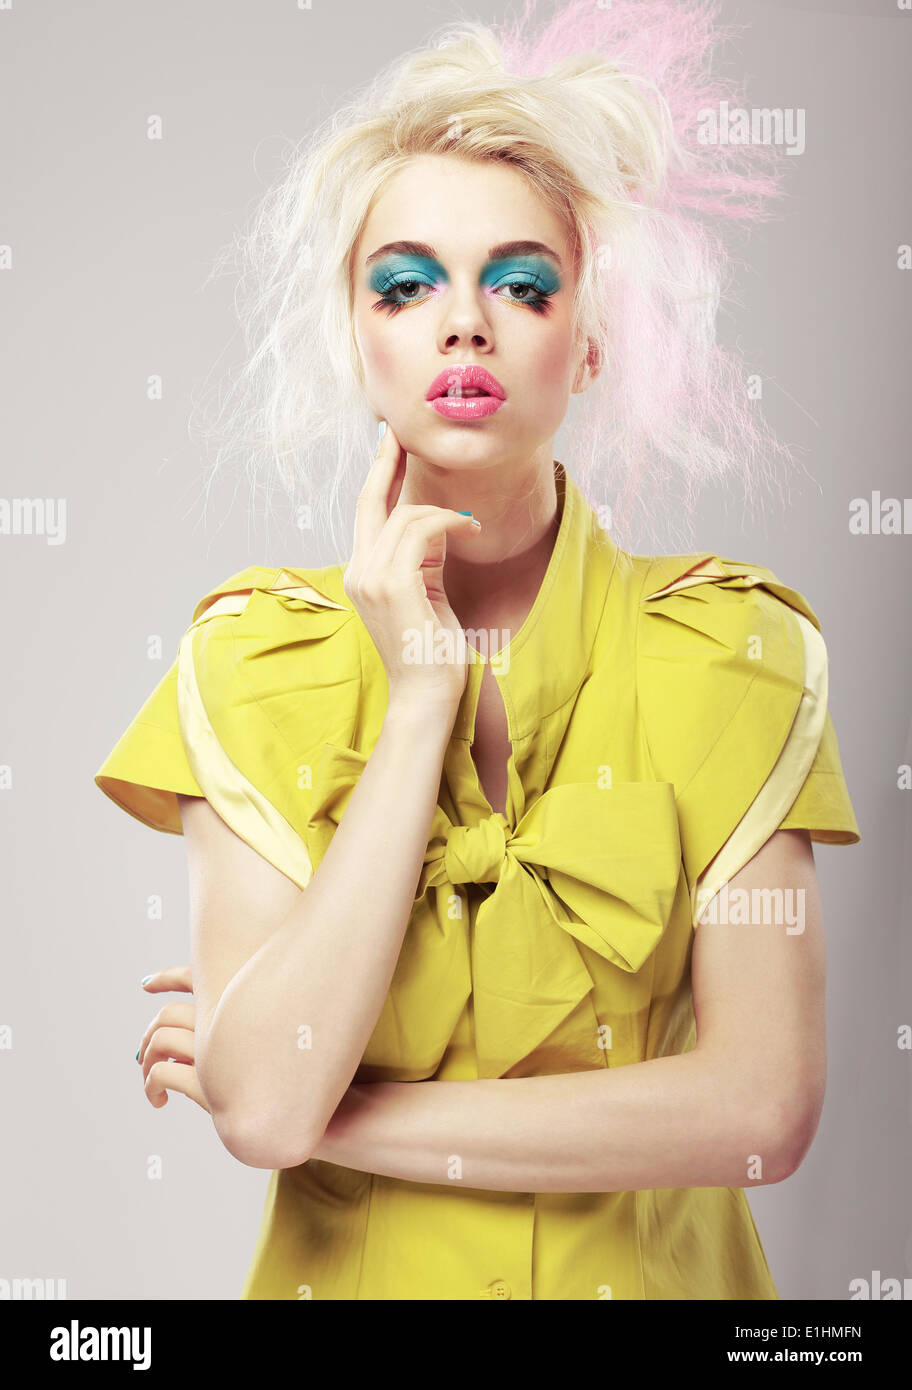 Art Deco. Vivid Blond Hair Woman with  Conspicuous Makeup. Glamor - Stock Image